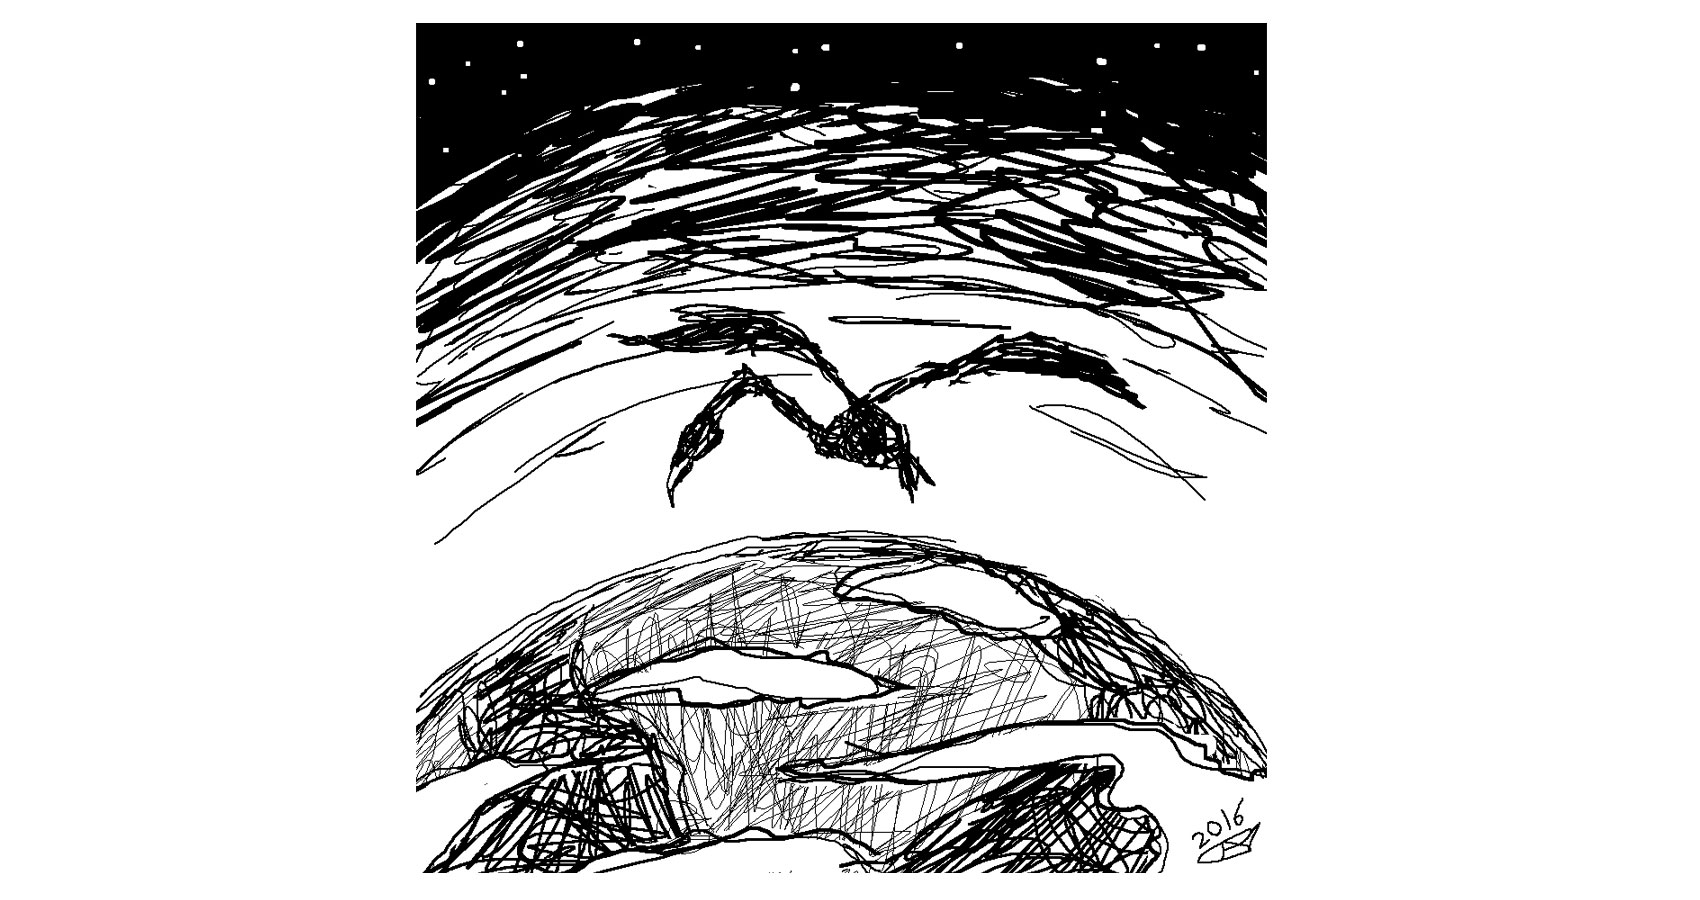 The Vulture by Robyn MacKinnon at Spillwords.com